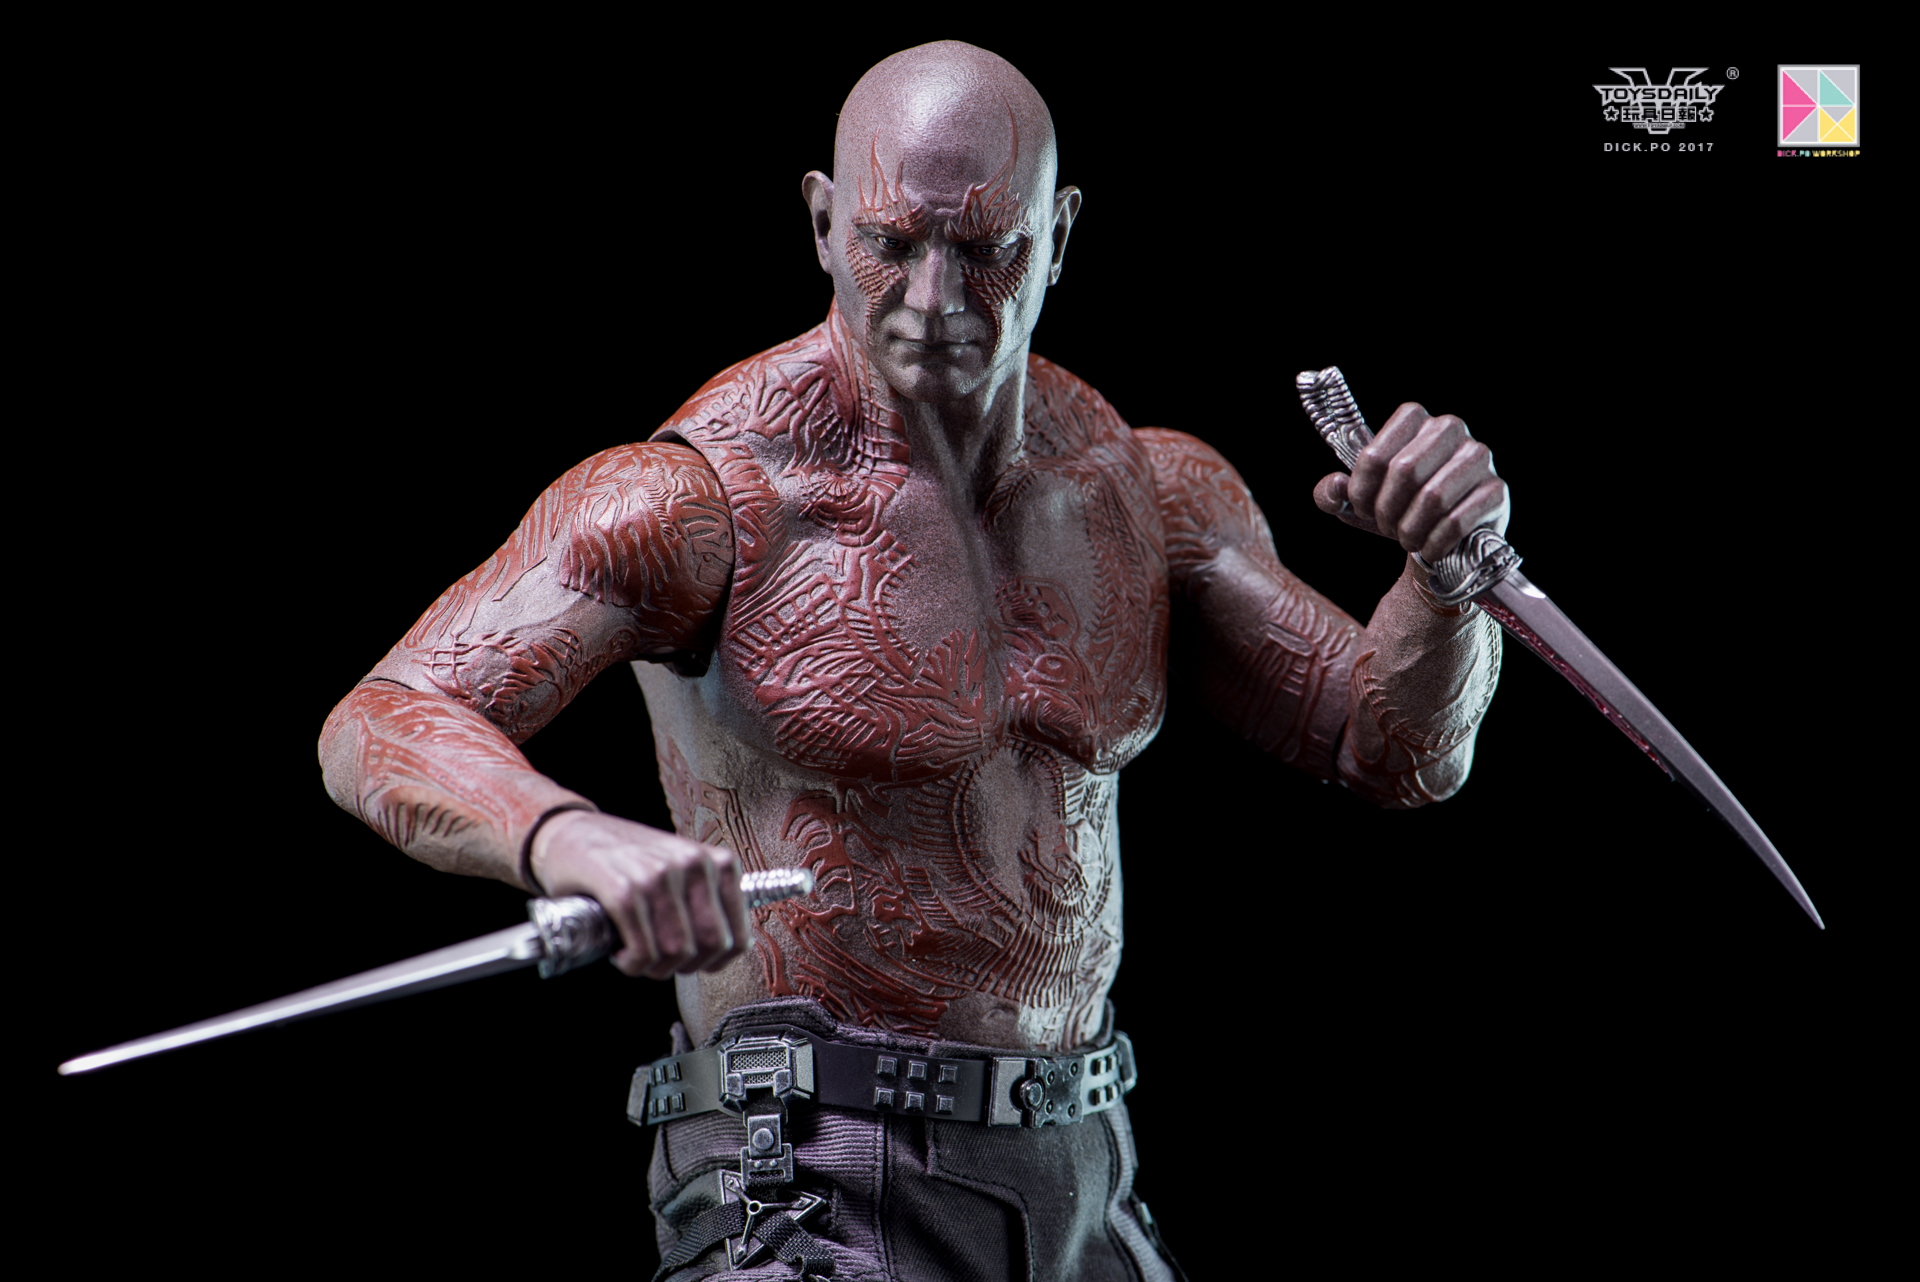 toysdaily_dick.po_Hottoys_DARX-26.jpg